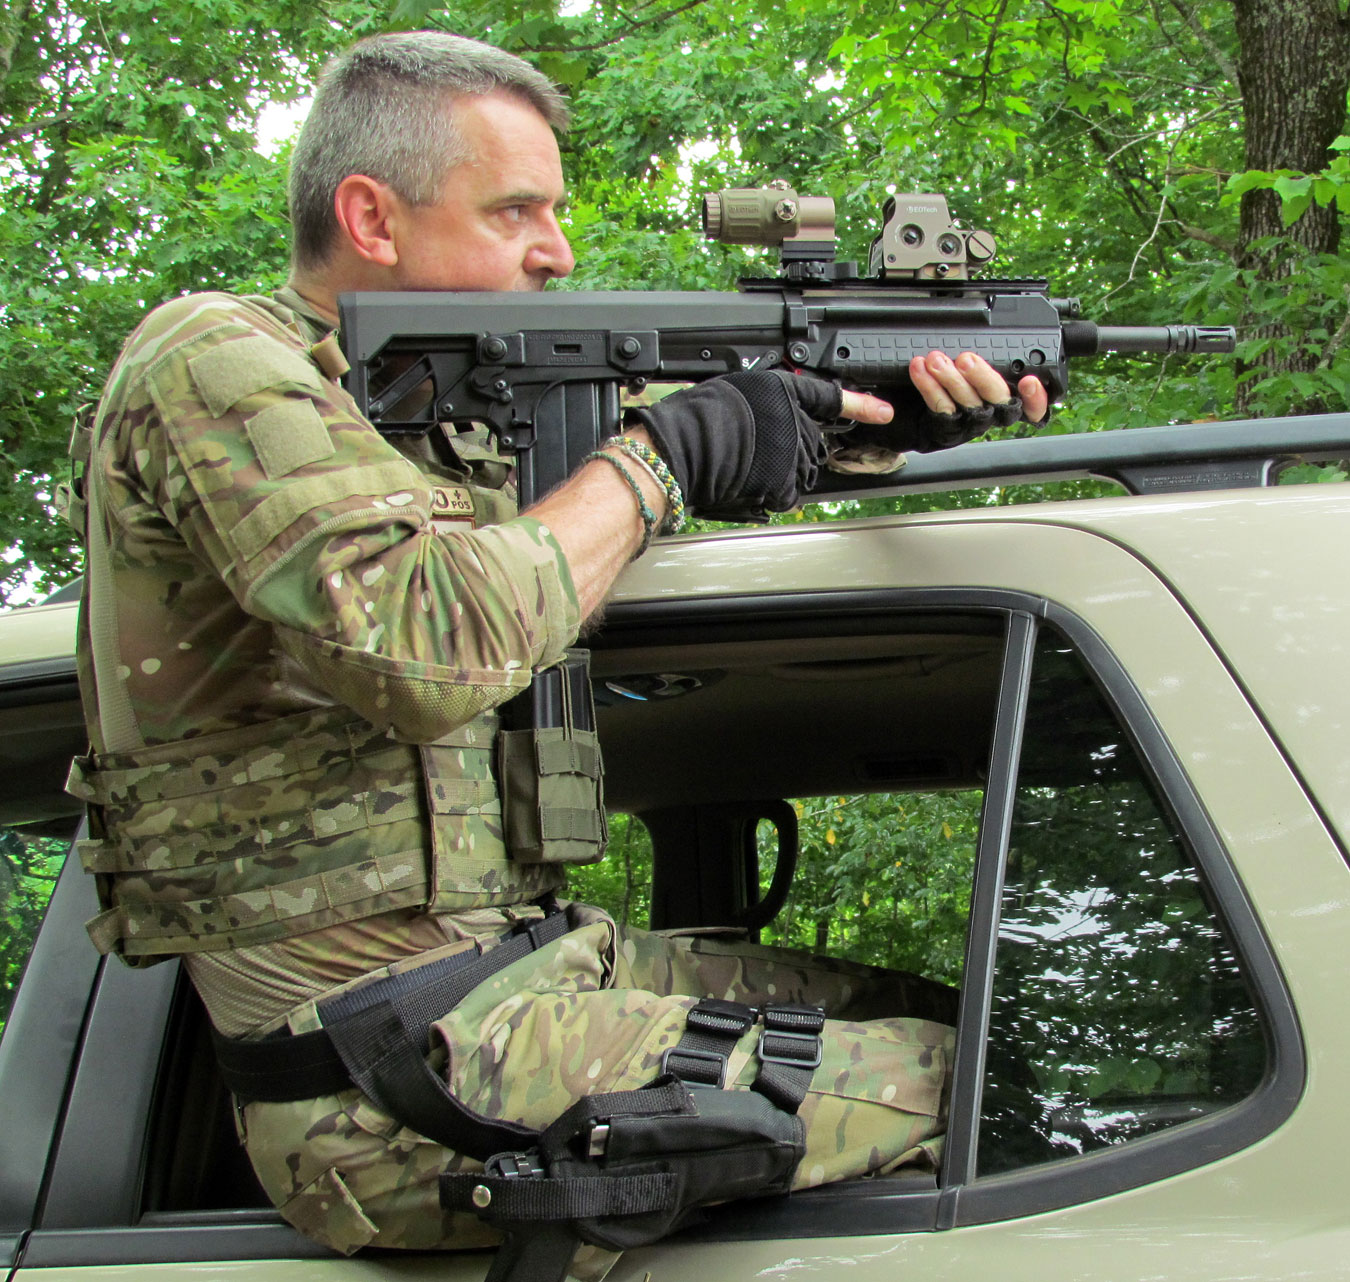 Will Dabbs Sitting in a car window wearing tactical gear shooting the Kel-Tec RFB